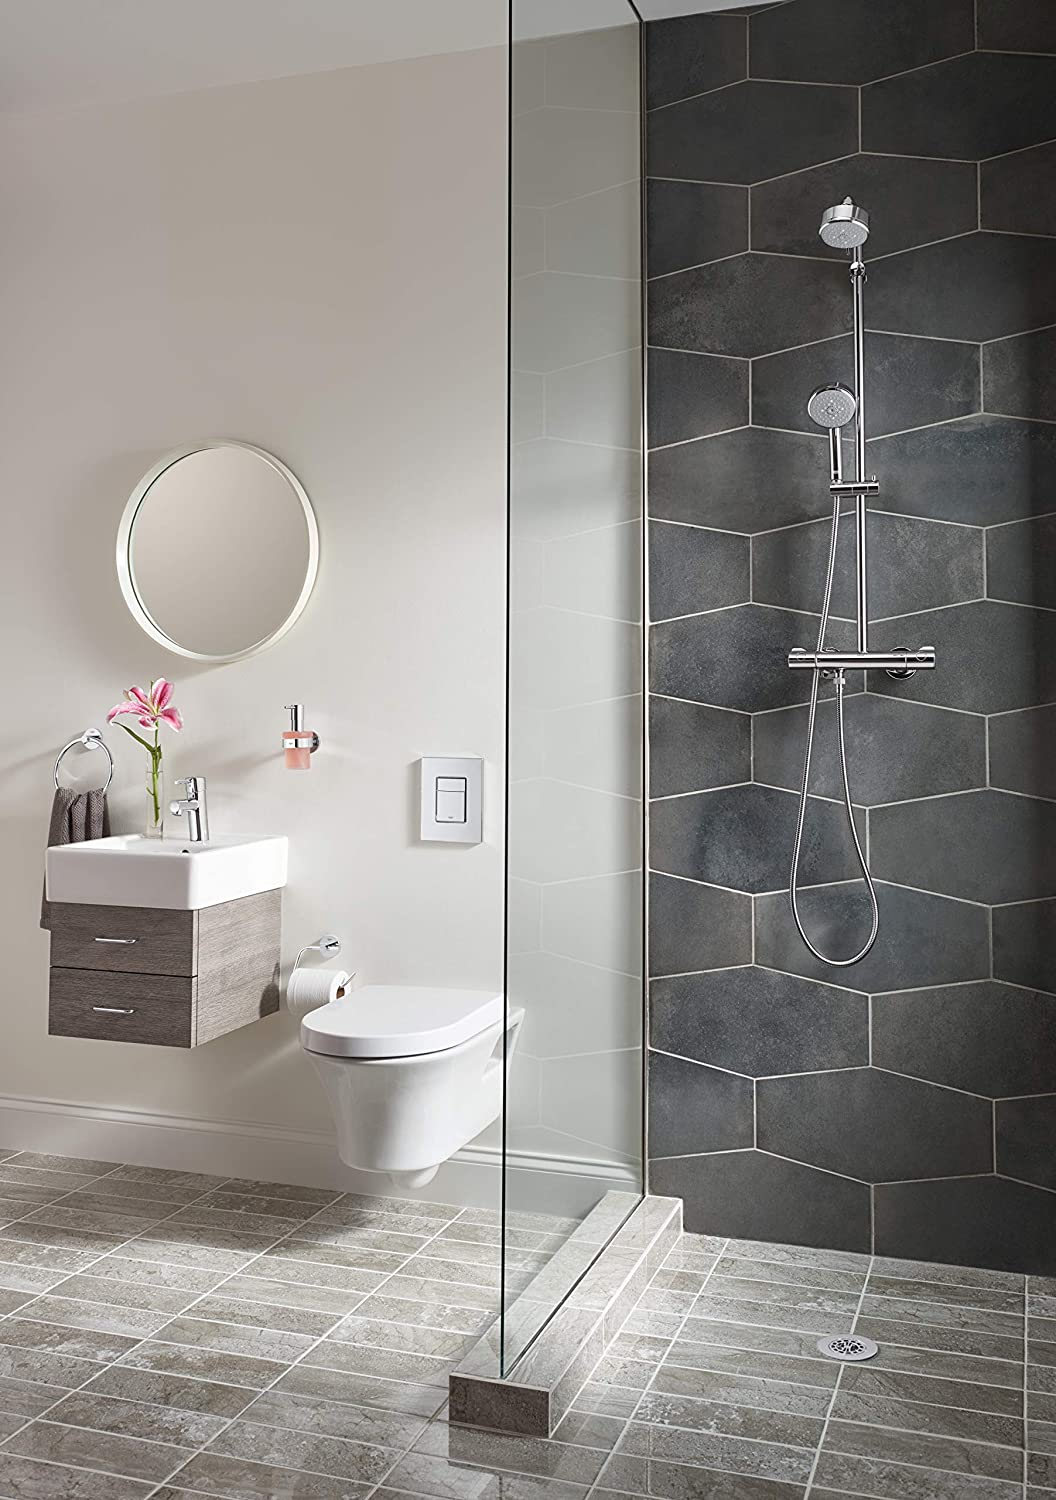 Essentials Toilet Paper Holder Without Cover Grohe 40689001